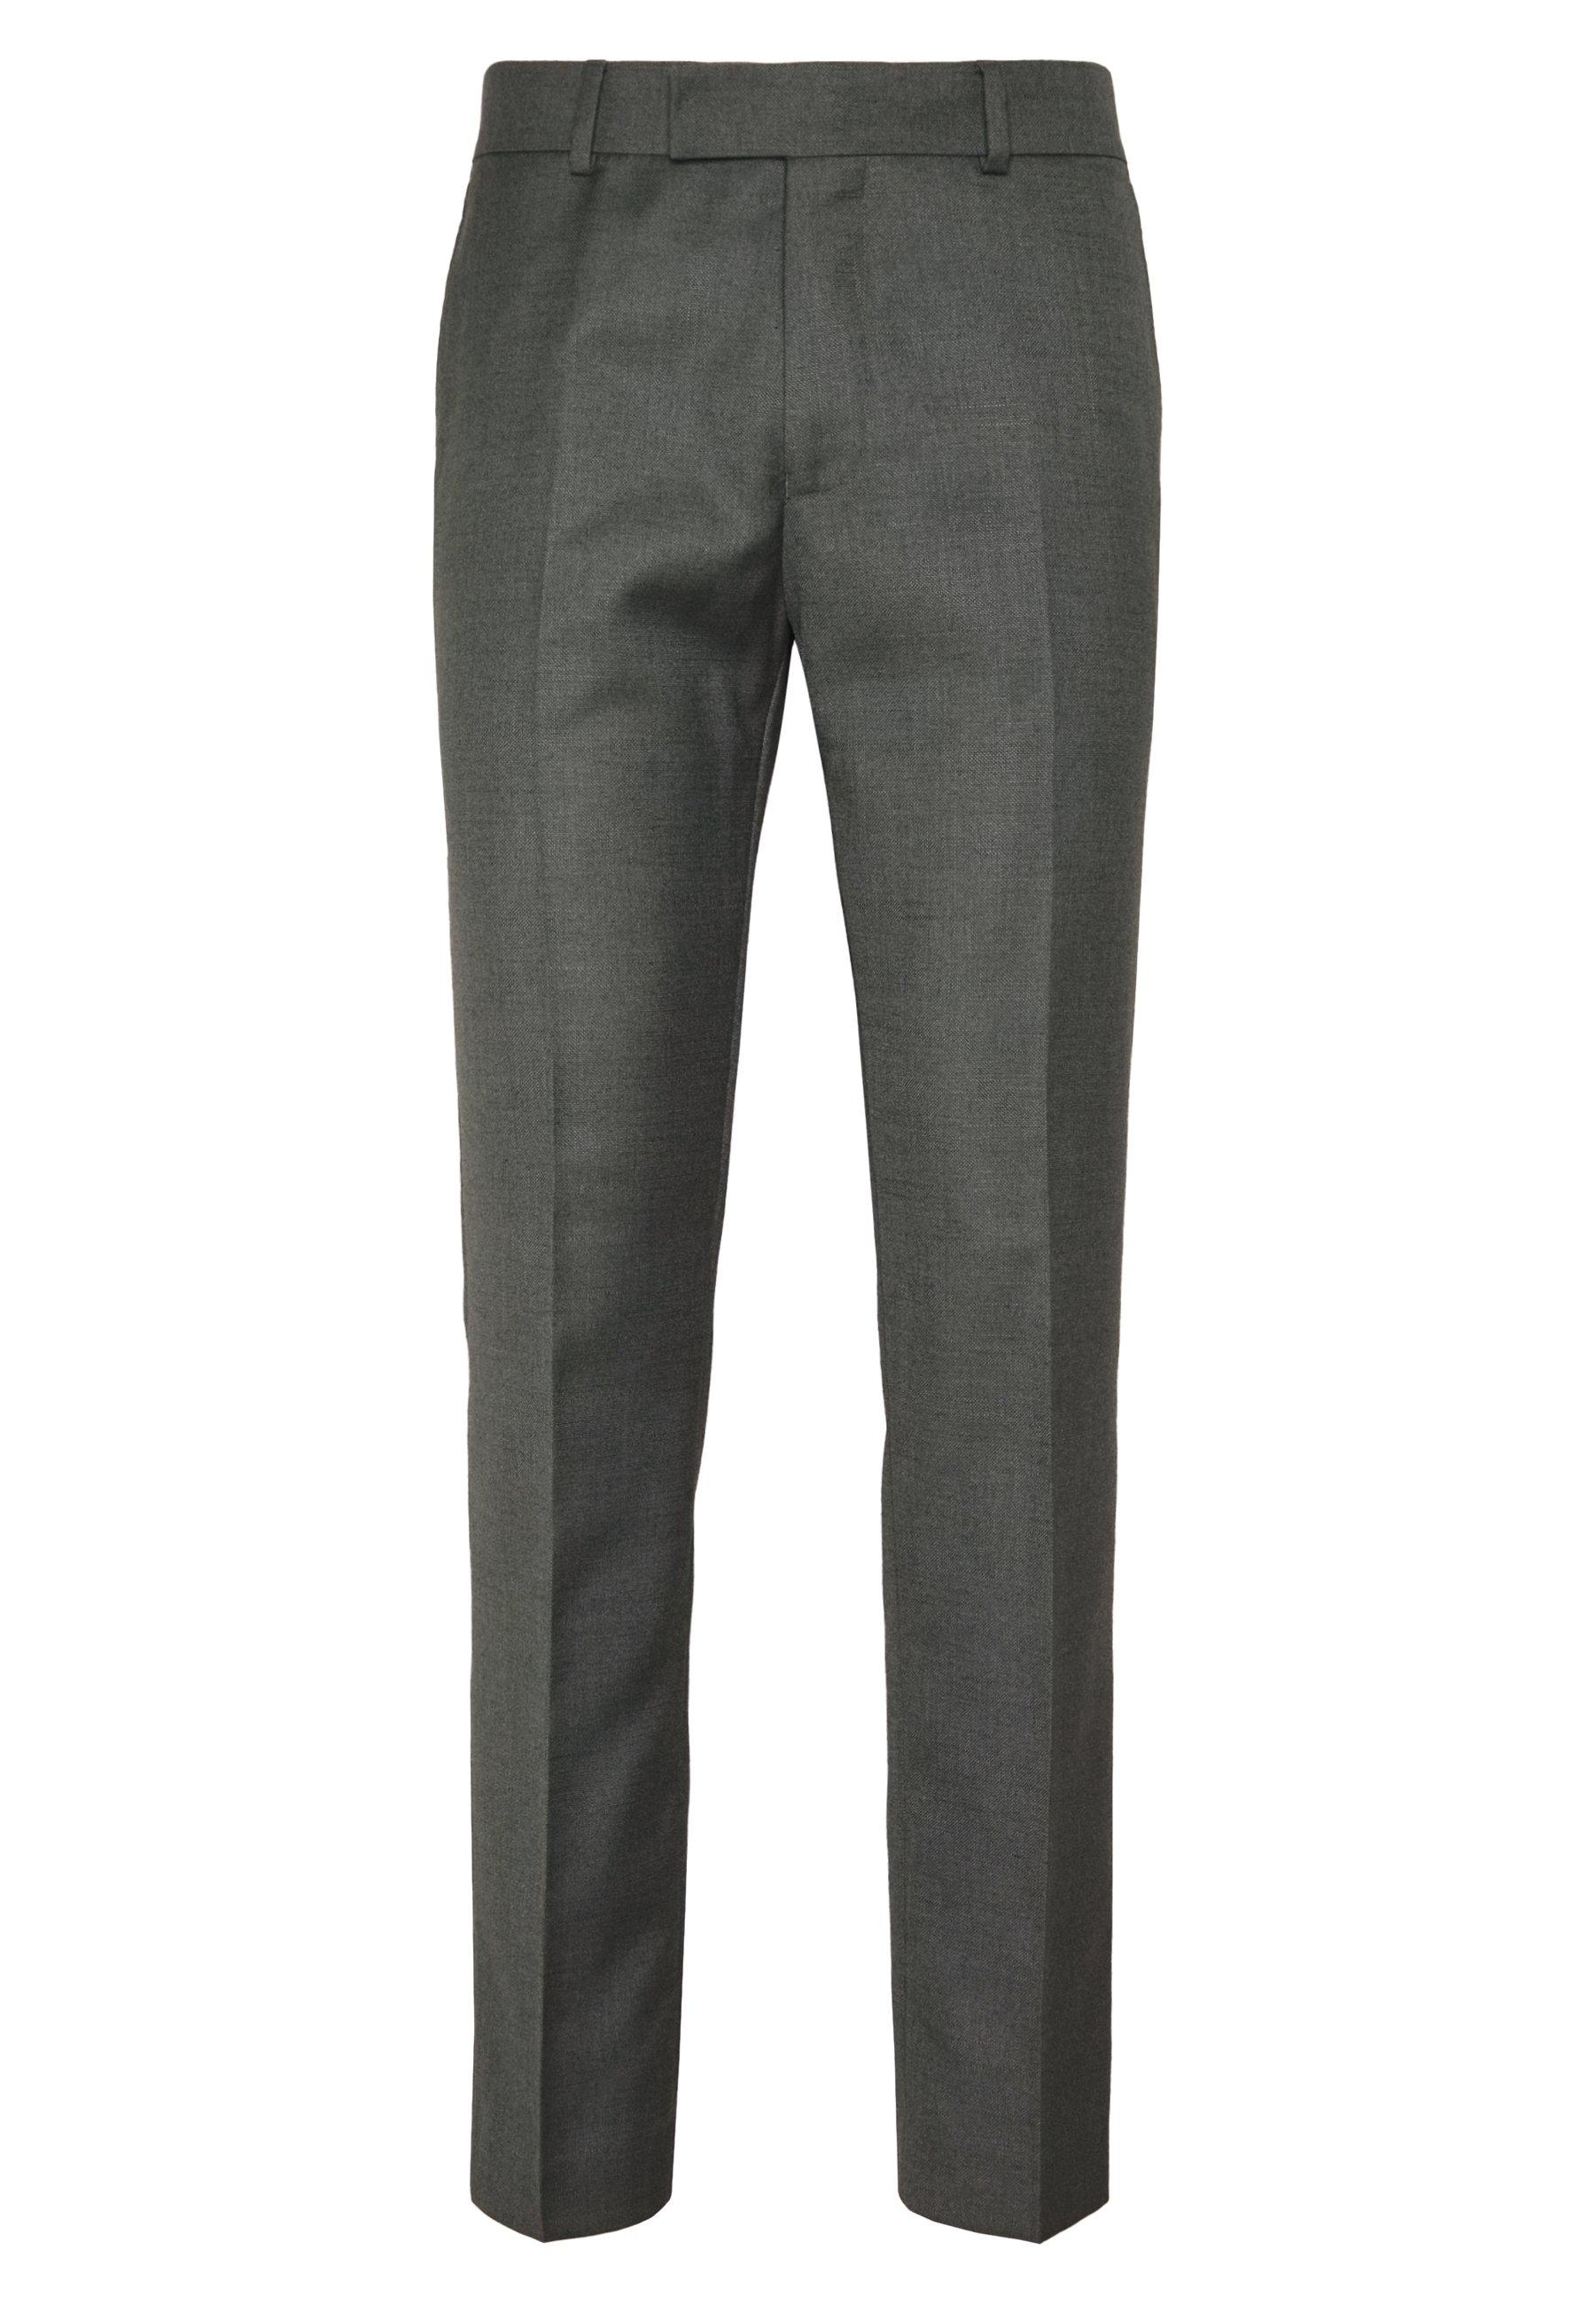 River Island Mormont - Suit Trousers Green